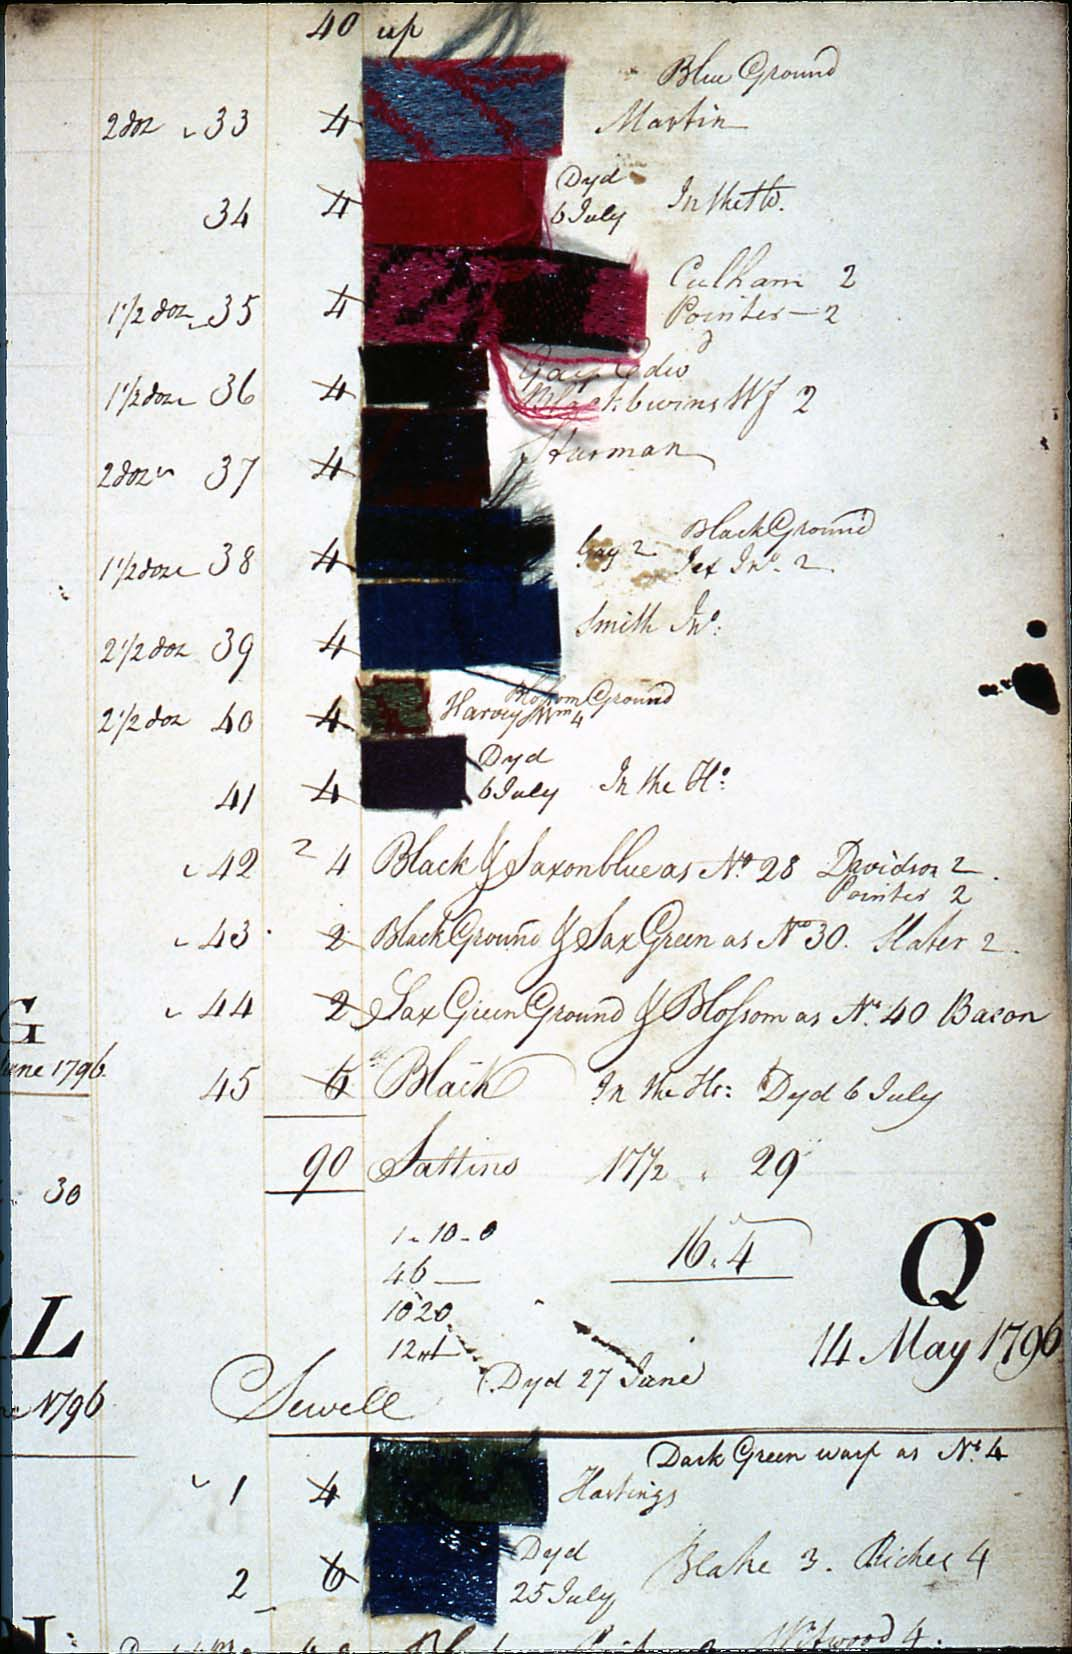 a photo of a pattern book with writing in a ledger style and swatches pasted in